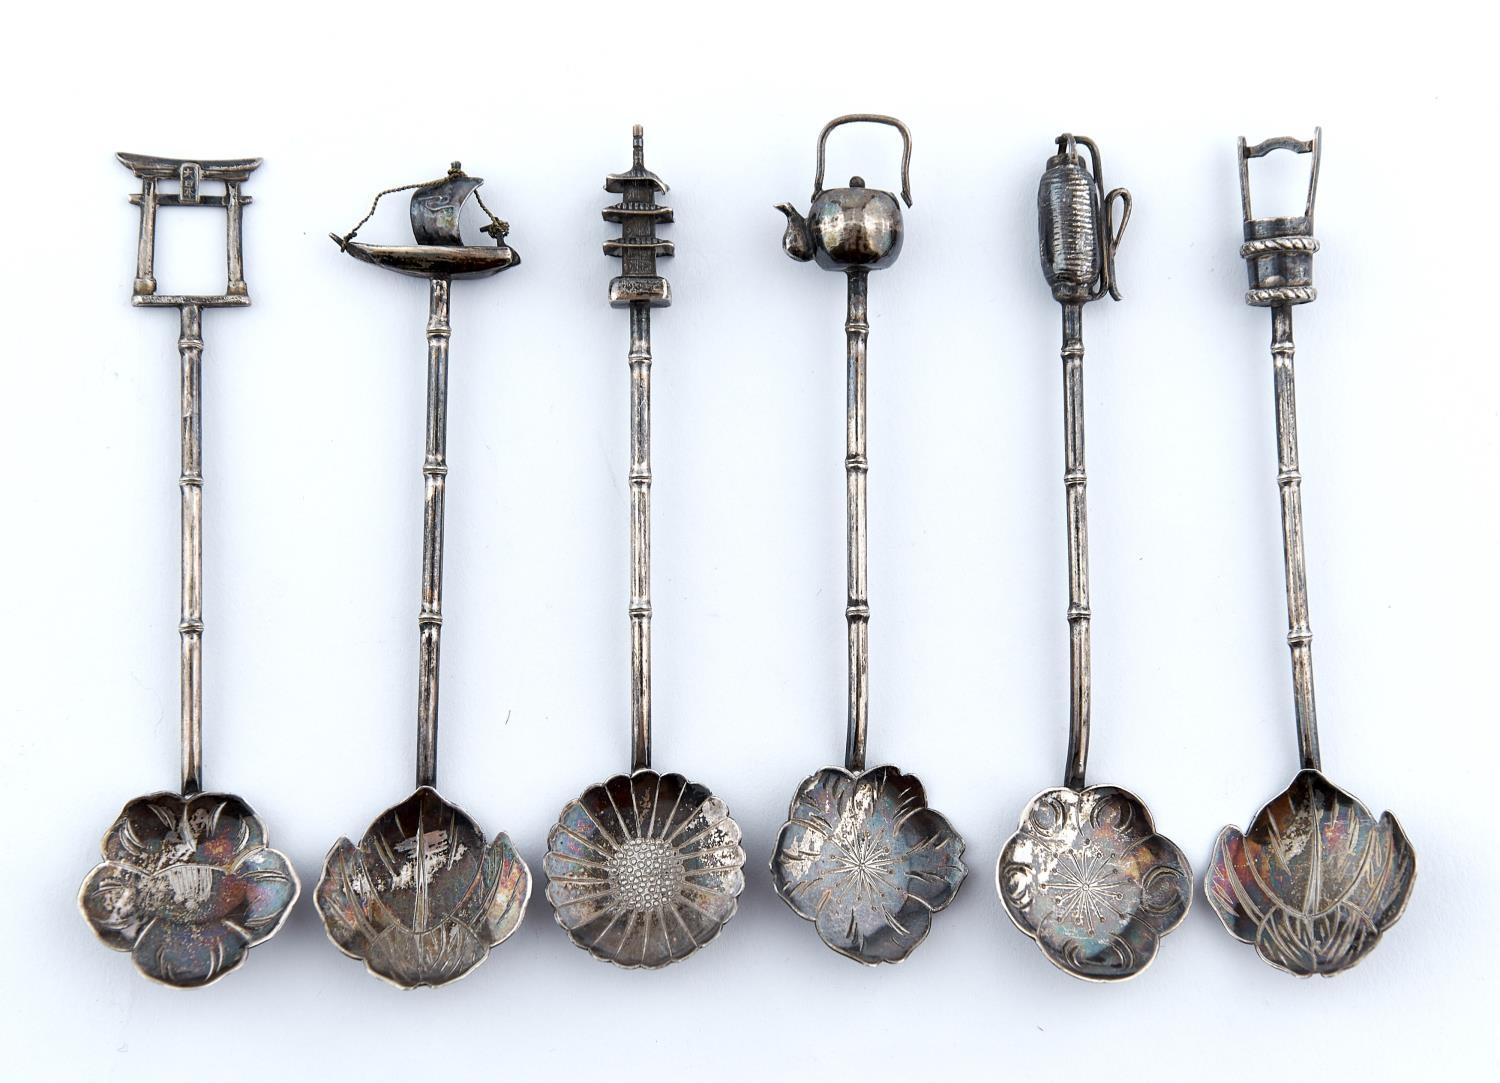 A HARLEQUIN SET OF SIX JAPANESE SILVER COFFEE SPOONS, C1880, MARKED 0.900, RISING SUN AND